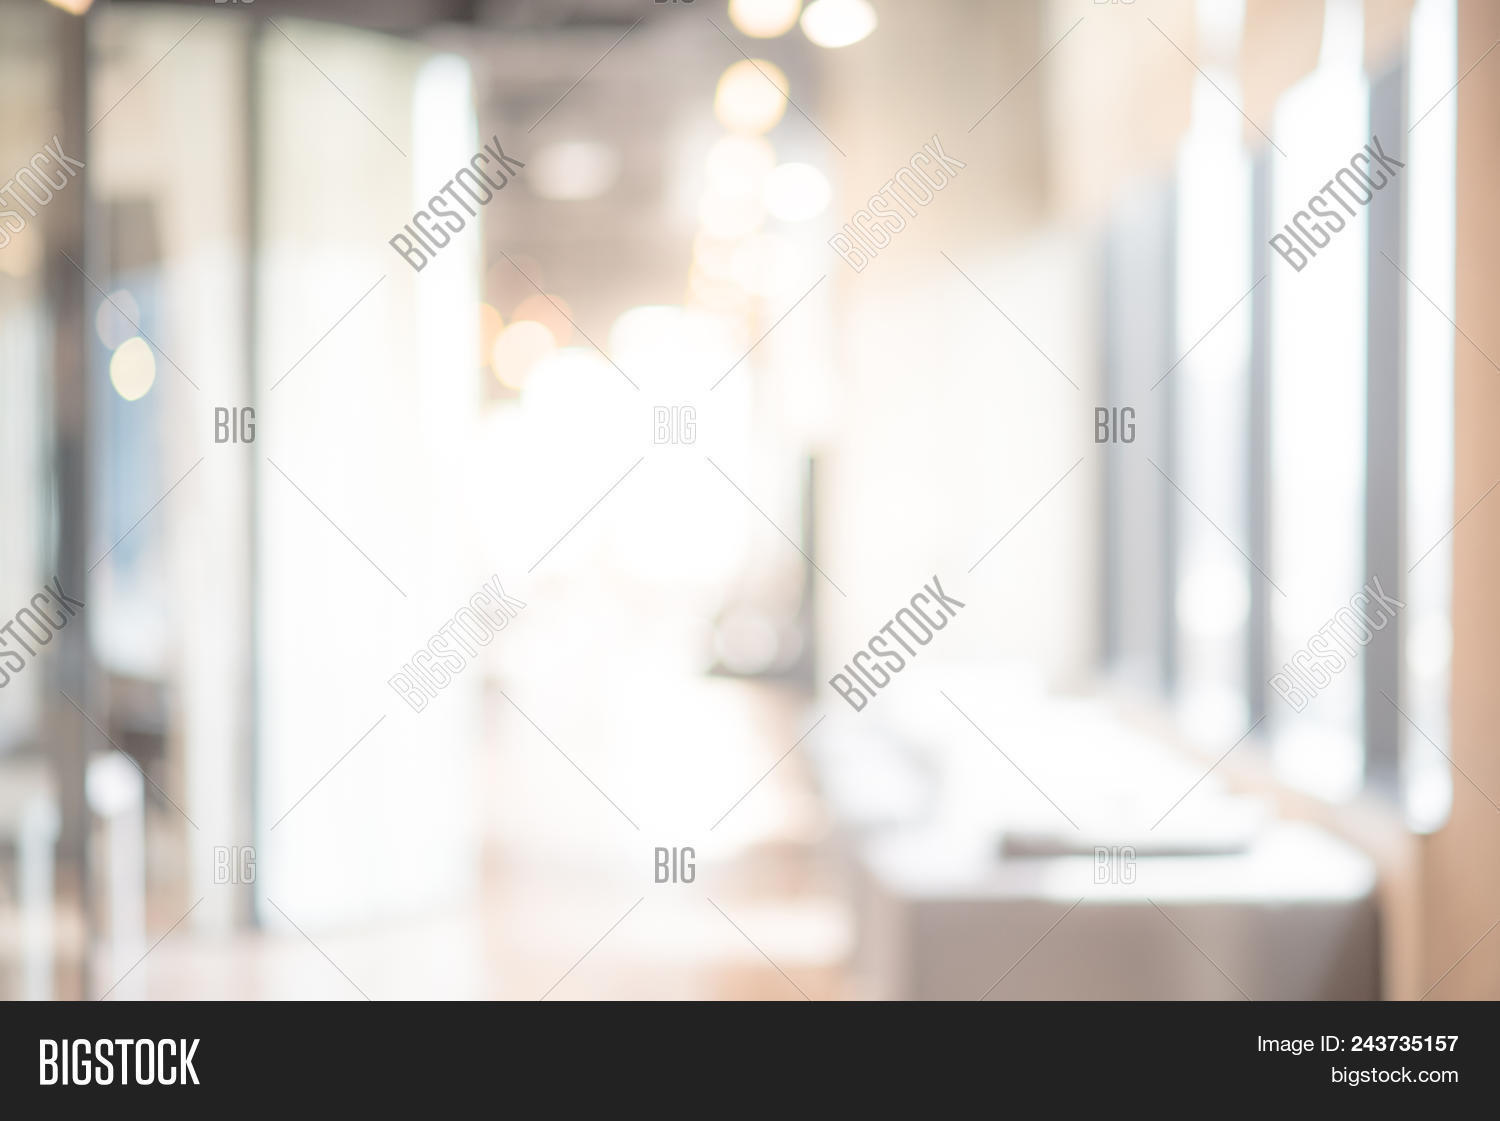 abstract,architecture,backdrop,background,blur,blurred,blurry,bokeh,bright,building,business,city,clinic,corridor,decor,decoration,defocused,department,depth,design,focus,glassy,hall,hallway,hospital,indoor,inside,interior,light,living,lobby,luxury,mall,medical,meeting,modern,office,perspective,public,retail,room,shop,shopping,soft,space,store,urban,white,window,workplace